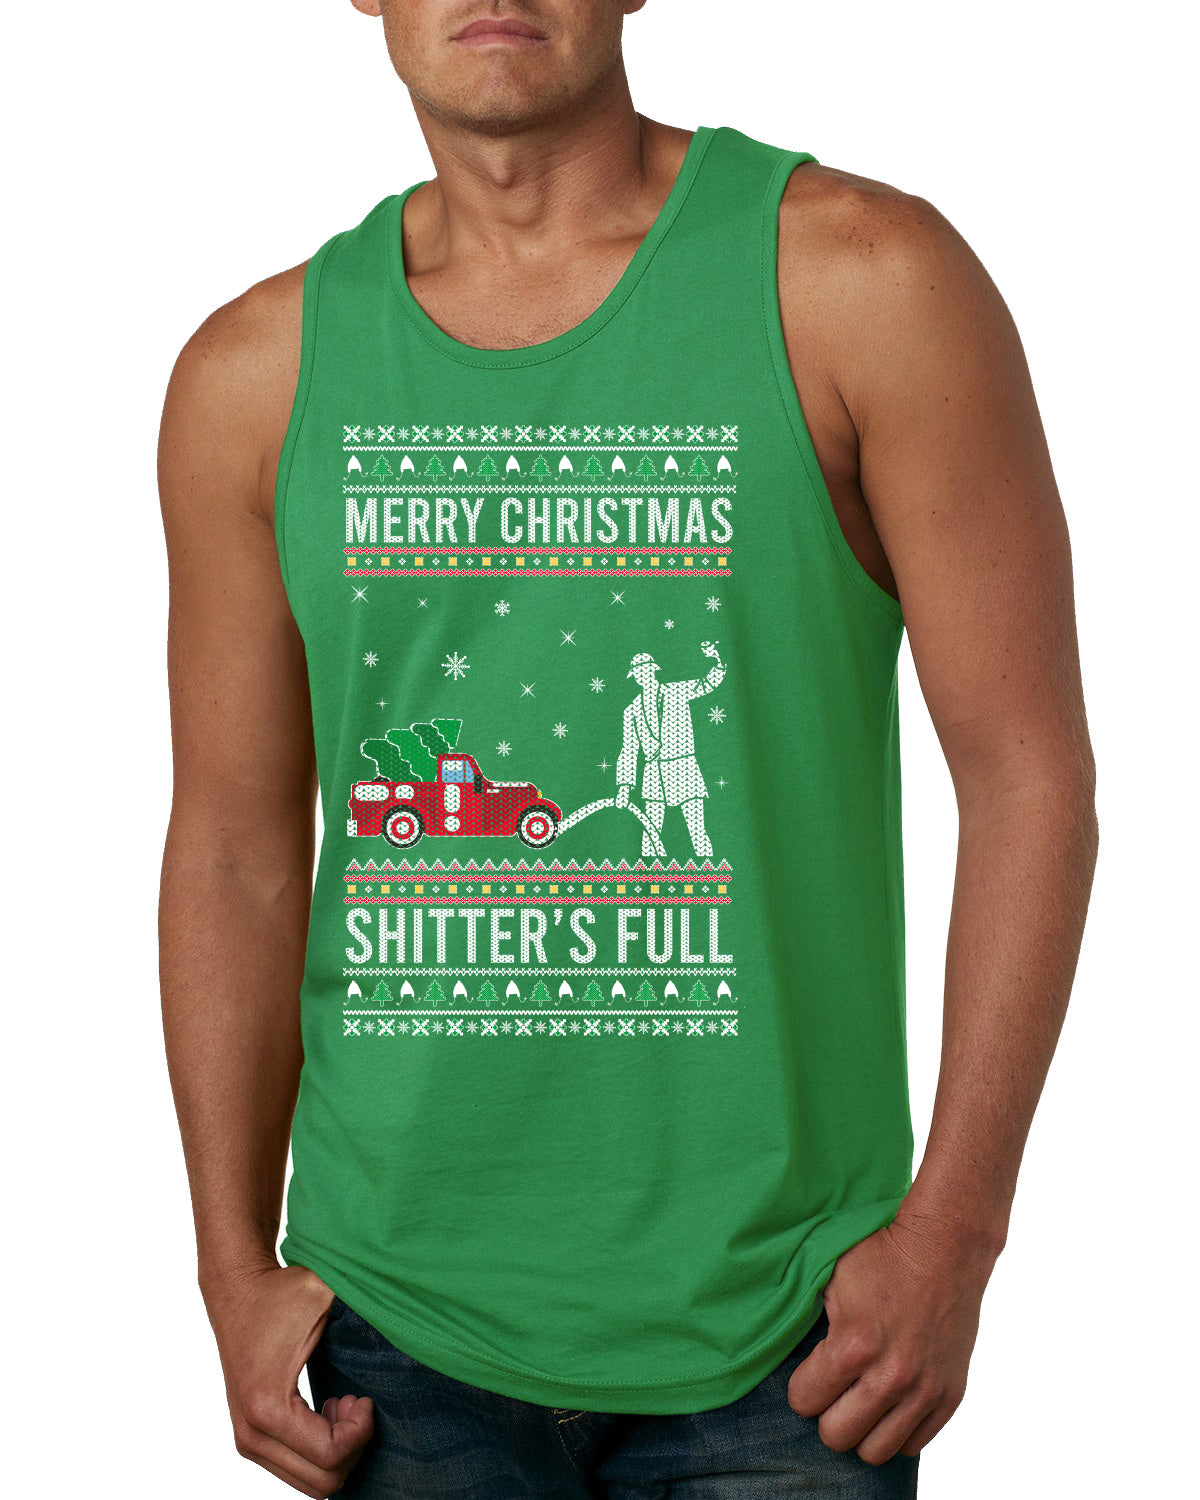 Merry Christmas Shitter's Full Christmas Vacation Ugly Christmas Sweater Mens Graphic Tank Top